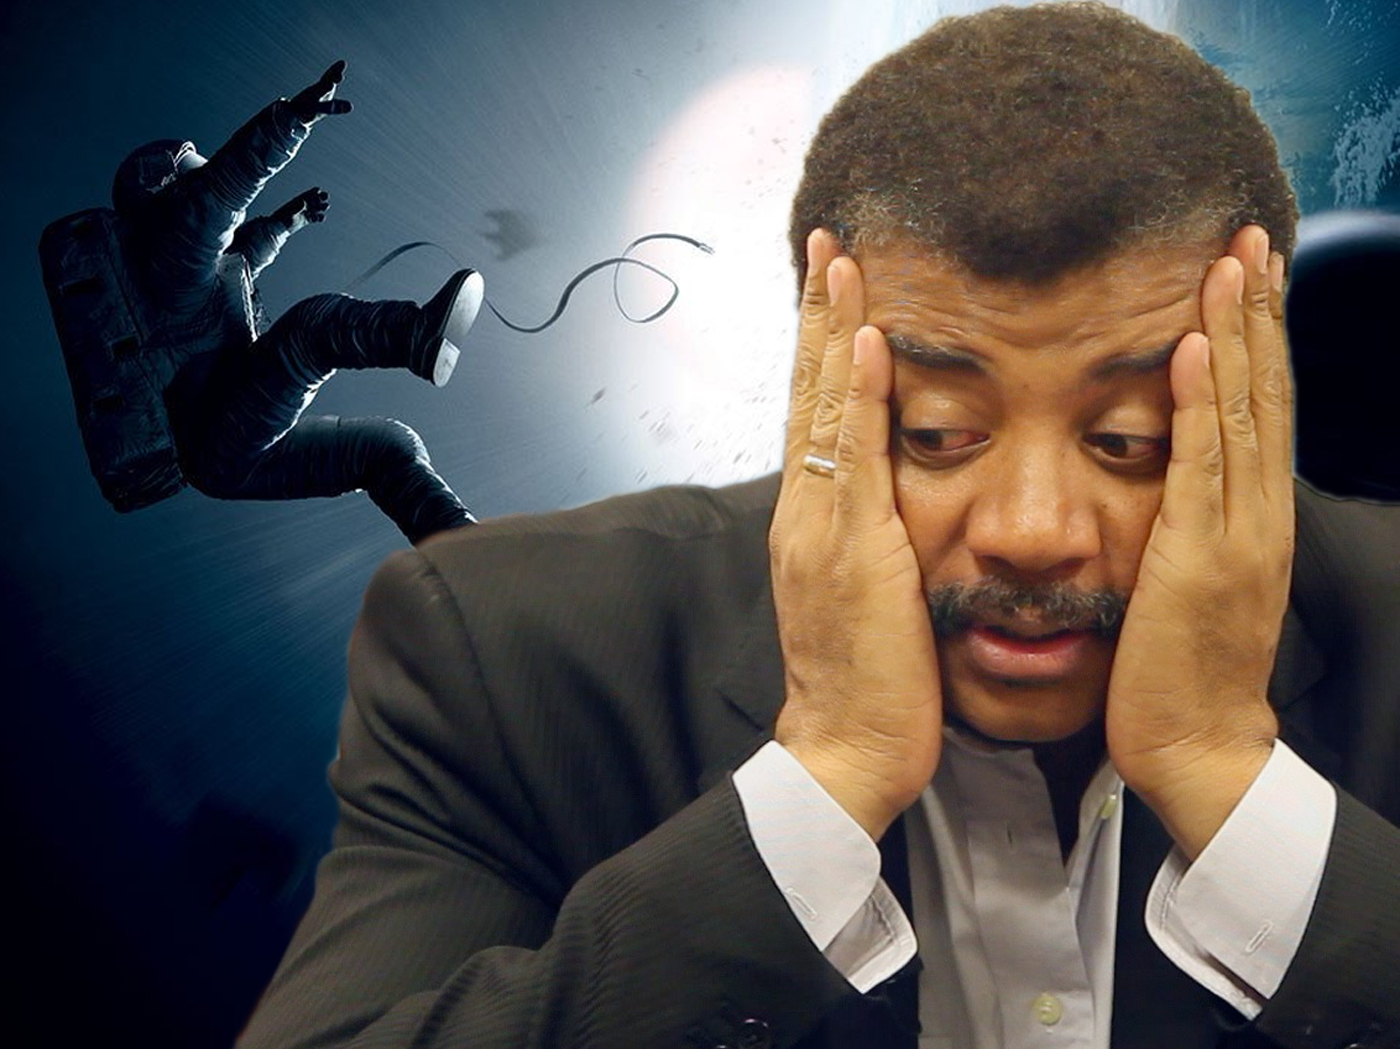 the life and works of neil de grasse tyson Neil degrasse tyson films an episode of startalk ng studios/katy andres the  universe is a hilarious place: neil degrasse tyson on what he learns  fame  has impacted his life to his favorite standup comedians (who include,  (dubbed  the first science-based talk show in tv history) successfully took.